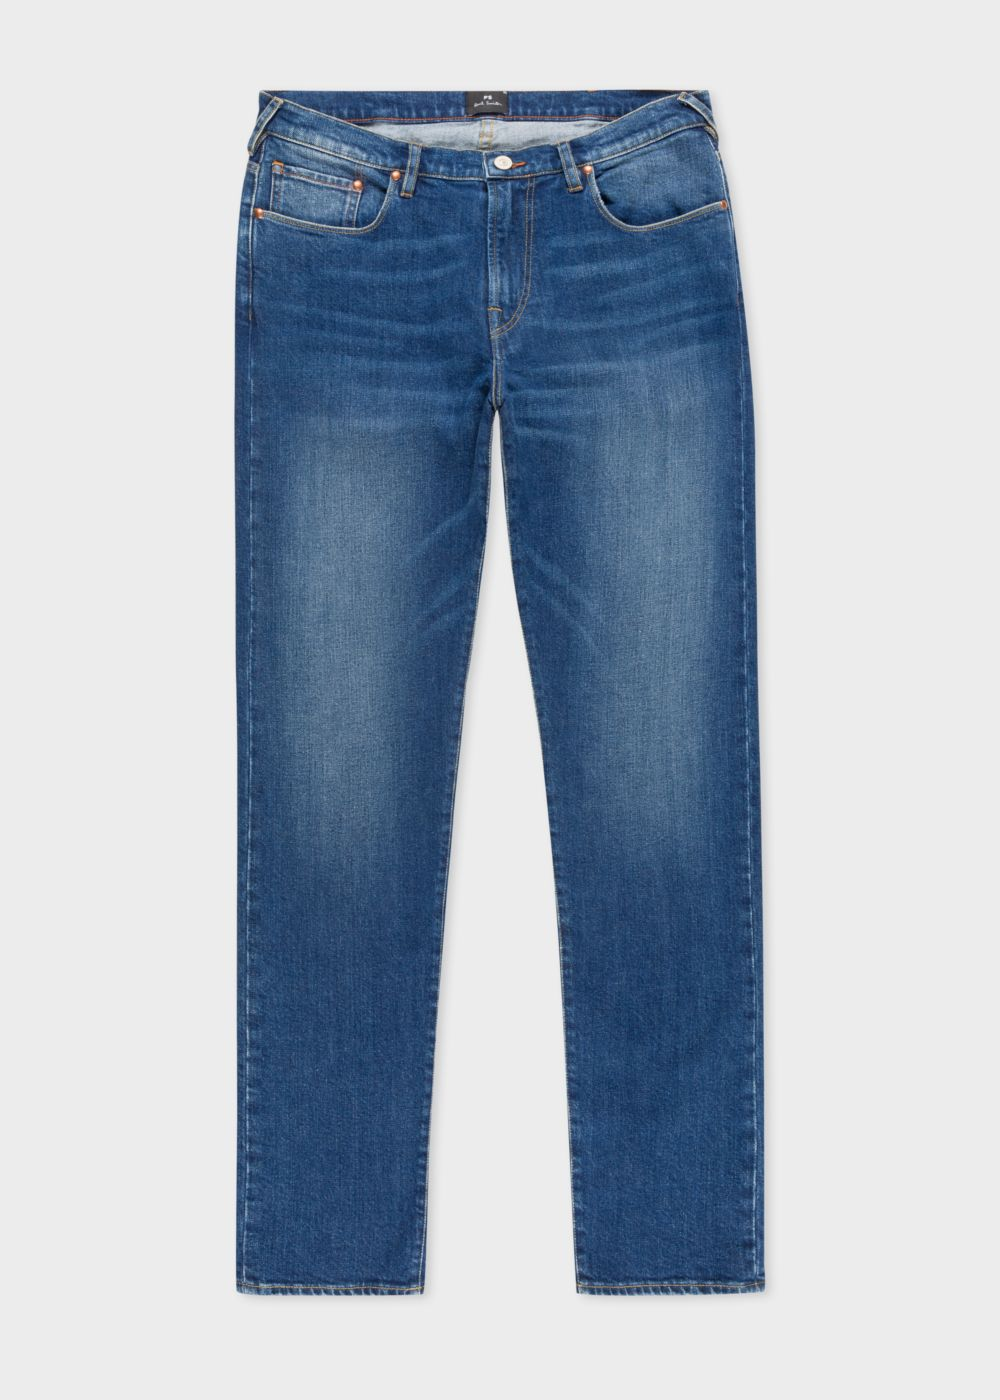 Paul Smith Men's Tapered-Fit 12oz 'Authentic Comfort Stretch' Mid-Wash Jeans